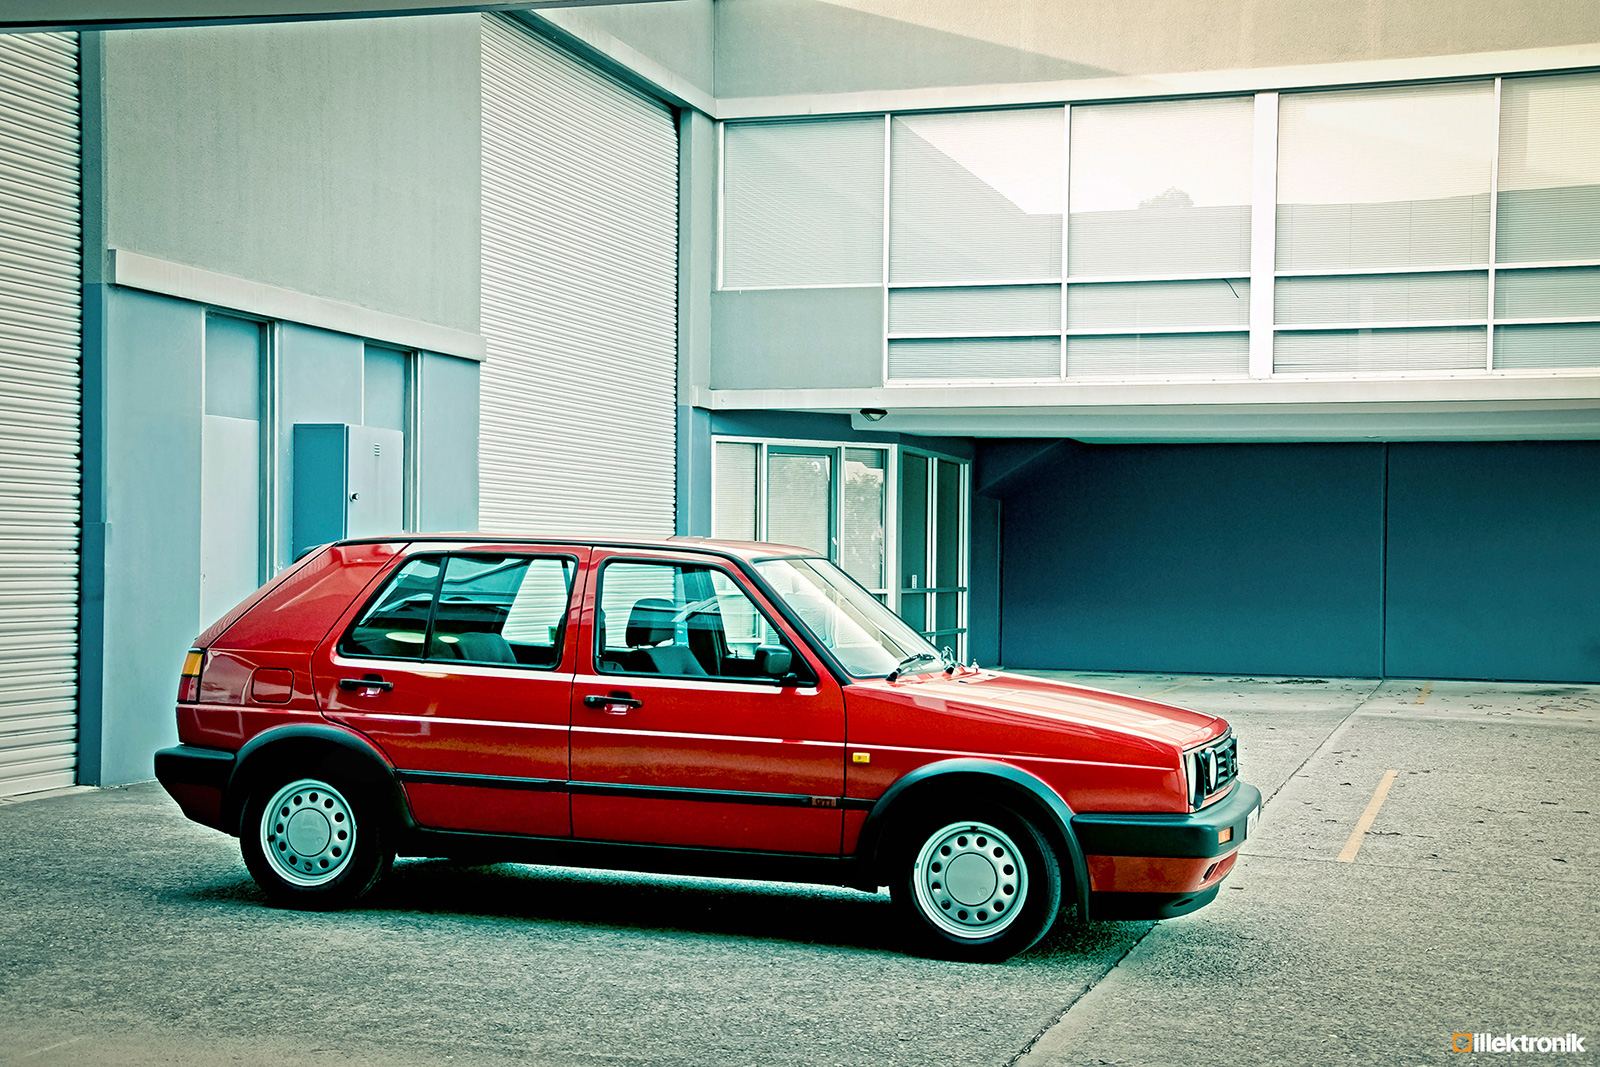 benoughs-VW-Golf-MKII-GTI-5.jpg